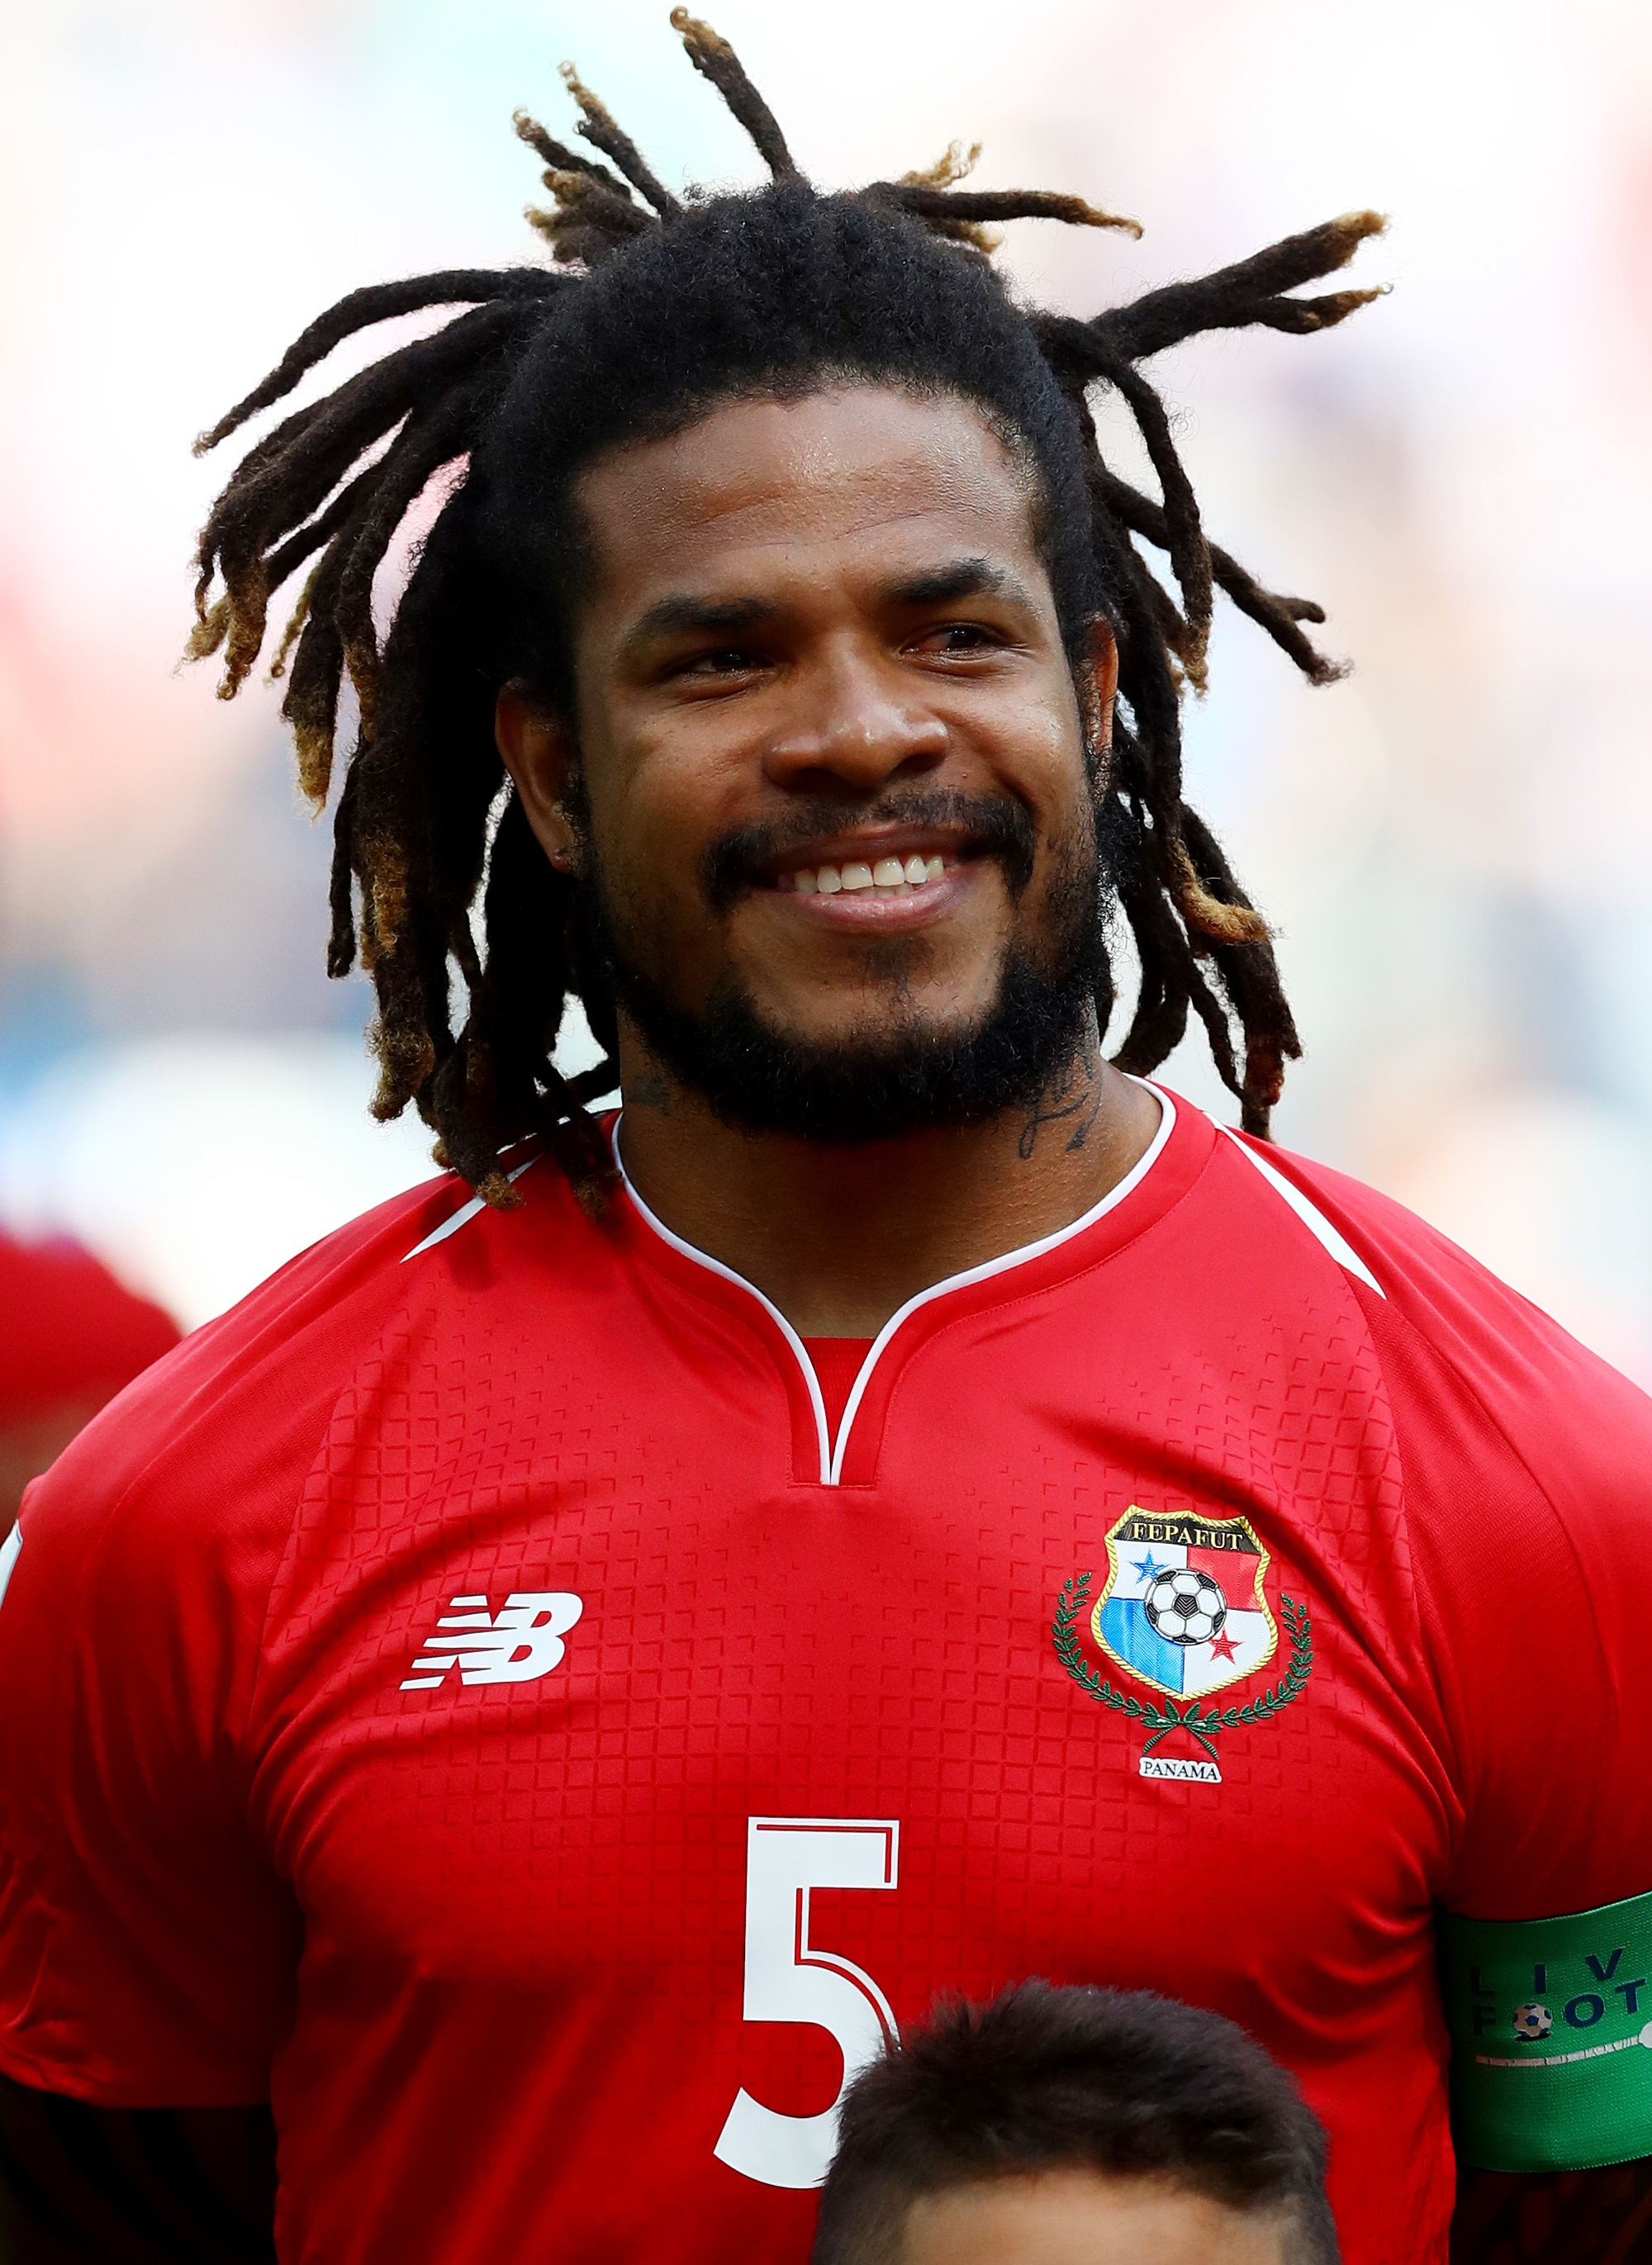 footballer hairstyles: roman torres with brown long locs pulled away from the face